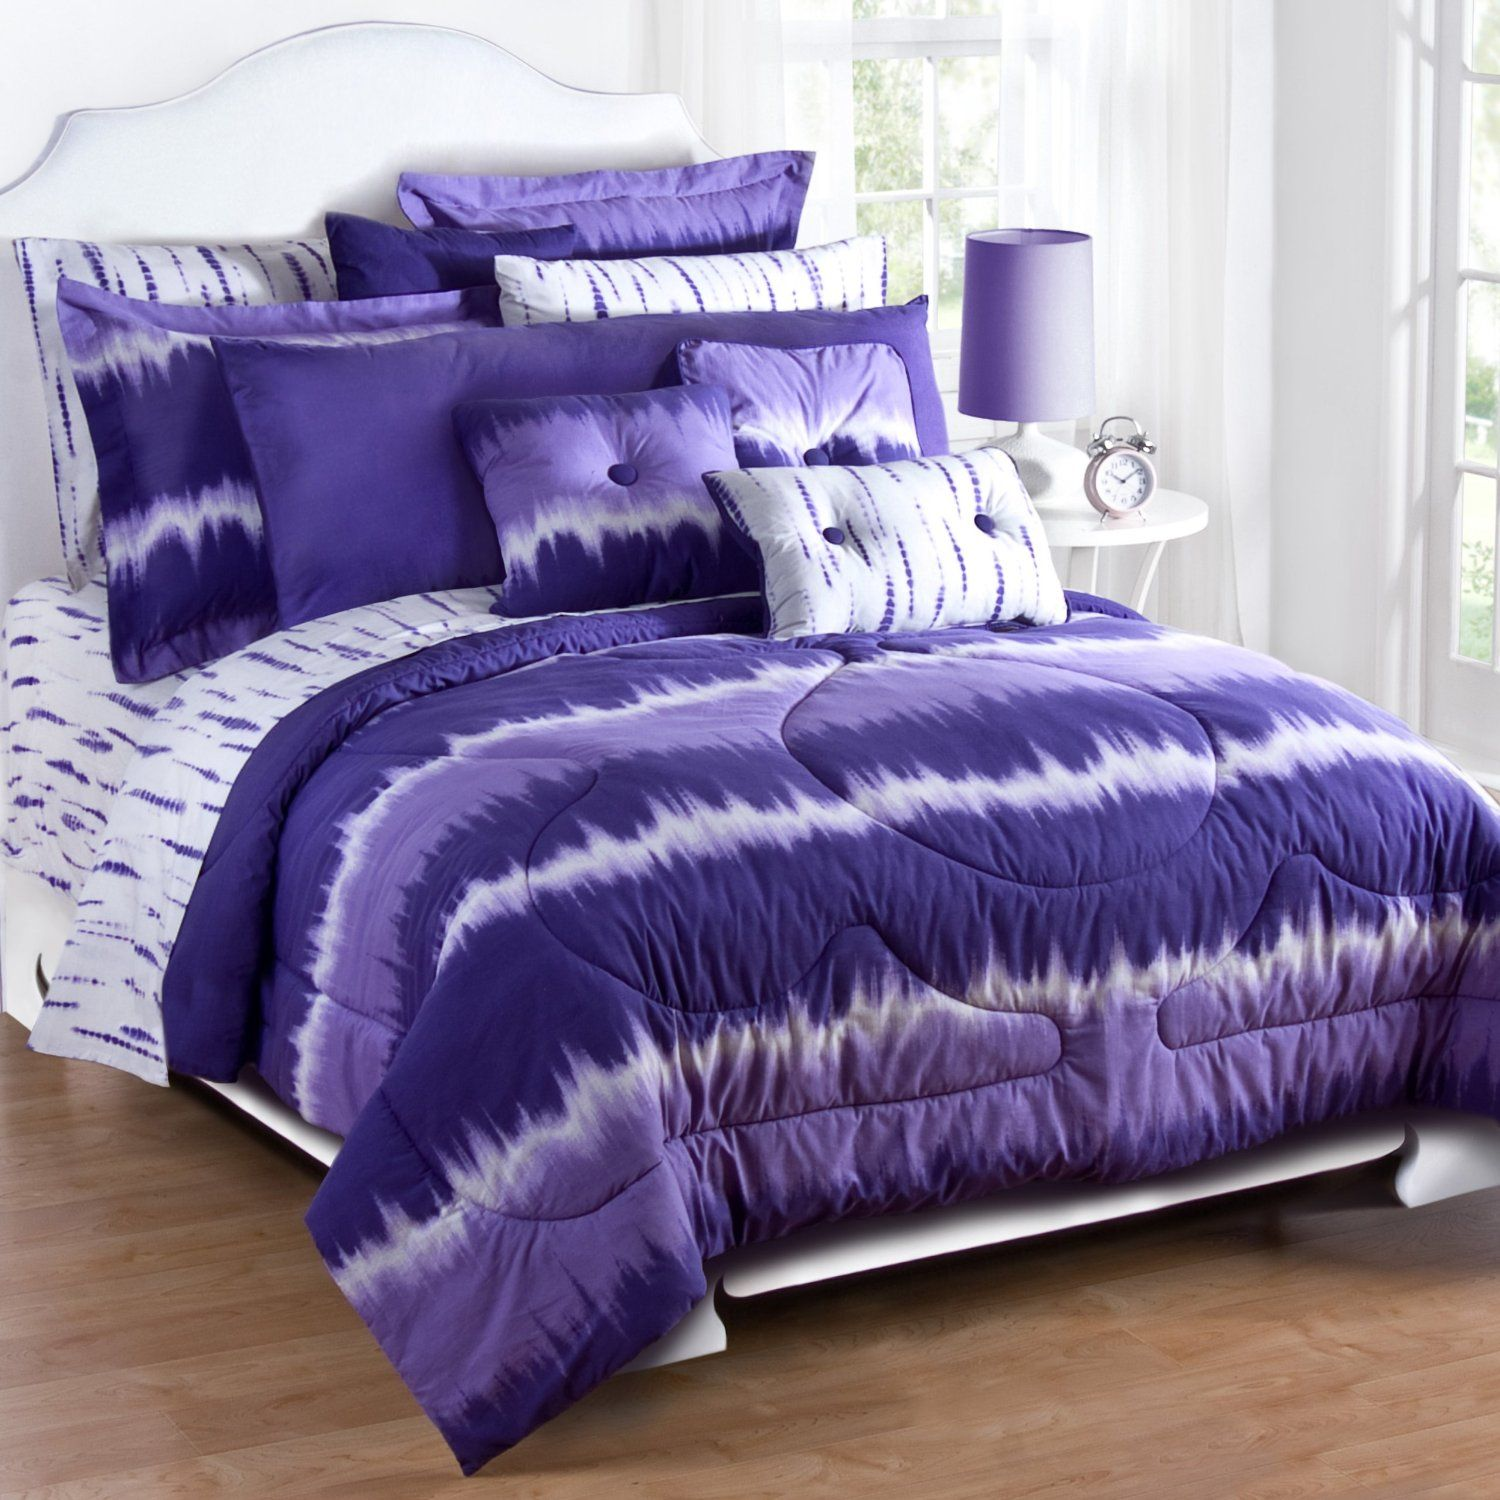 for a dots macy comforter online uk relaxing bag kohls bedding rustic thrifty full sets canada get comforters tropical set fishing macys com size polka zq plus girls with bed sham king lenox queen ross purple wondrous corner western twin cheap